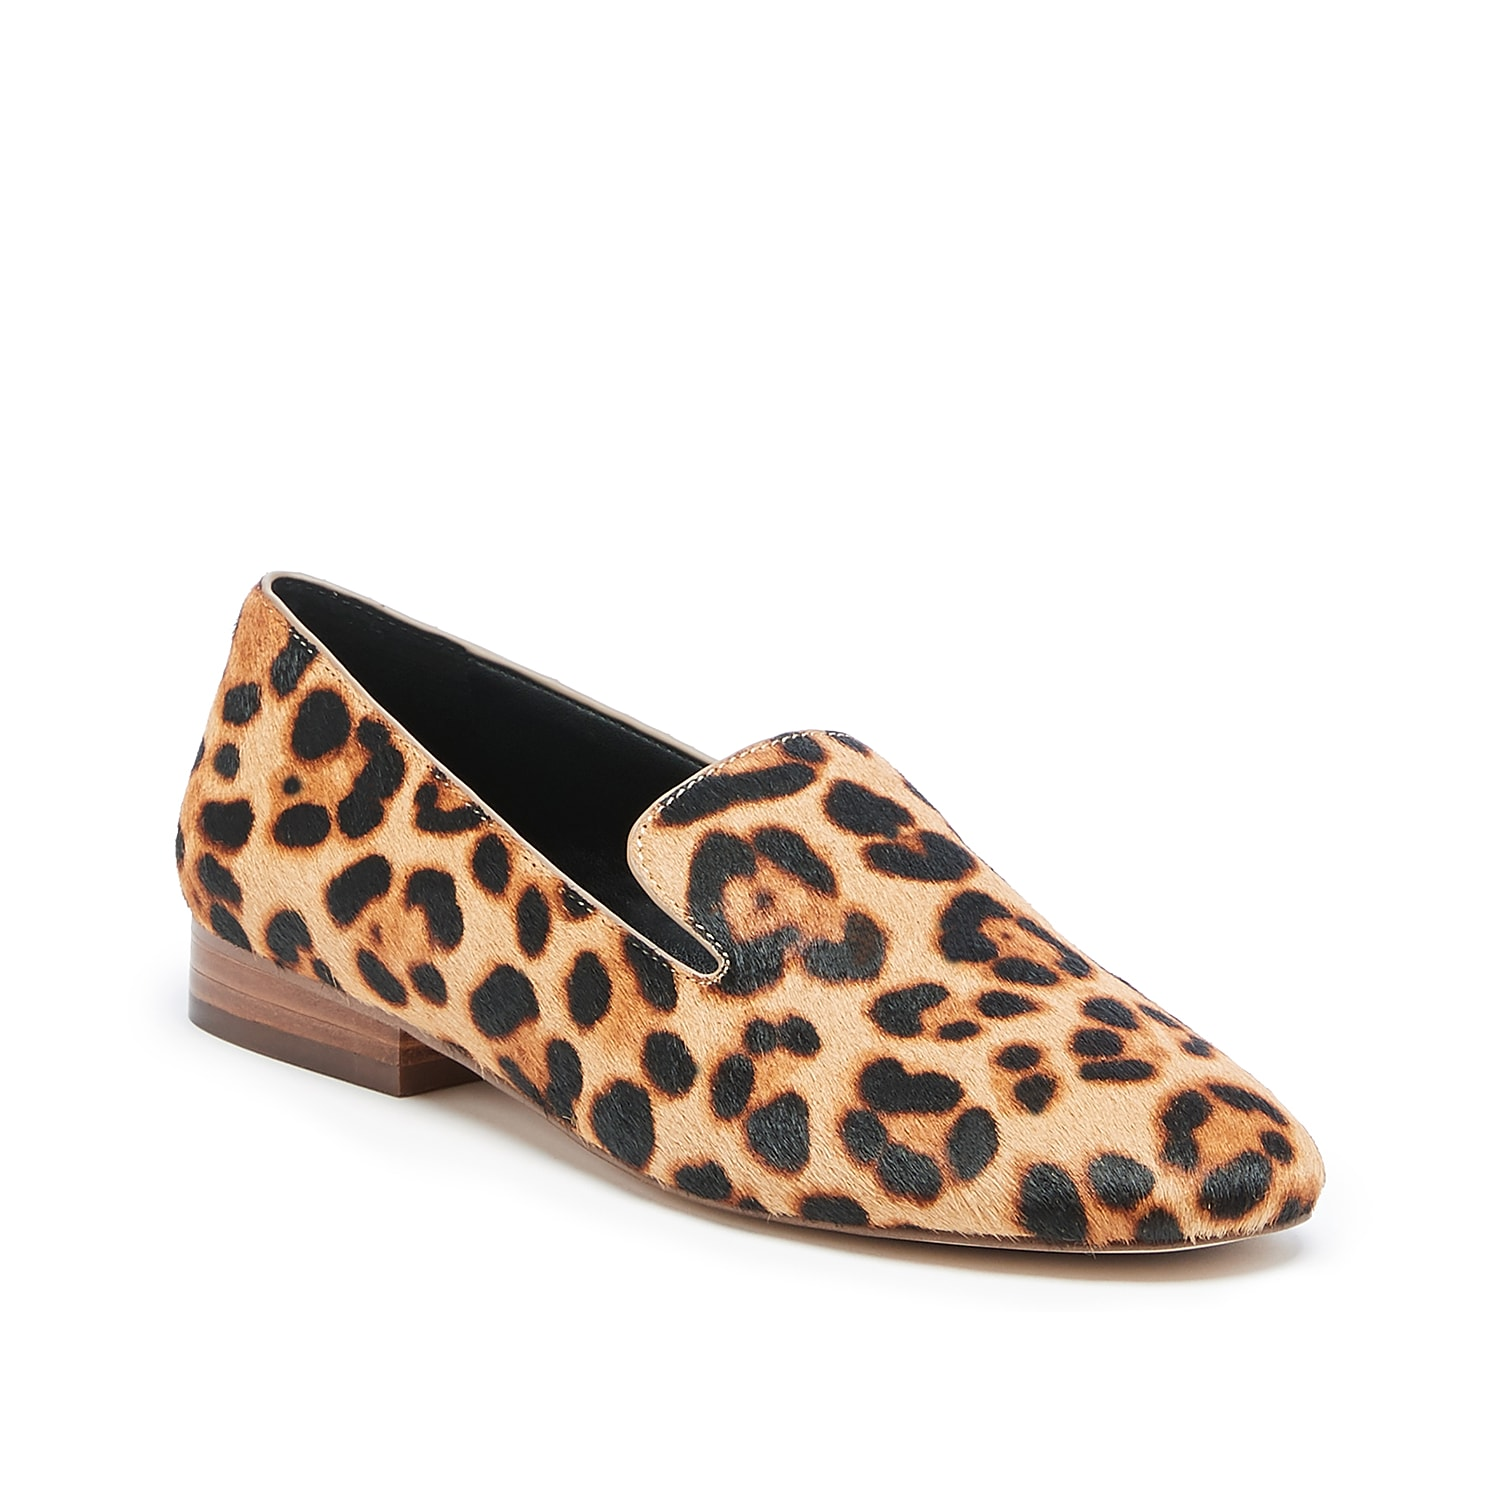 The Sole Society Takina loafer will elevate your fashion standards. This loafer features a traditional slip-on design and durable outsole with a subtle stacked heel.